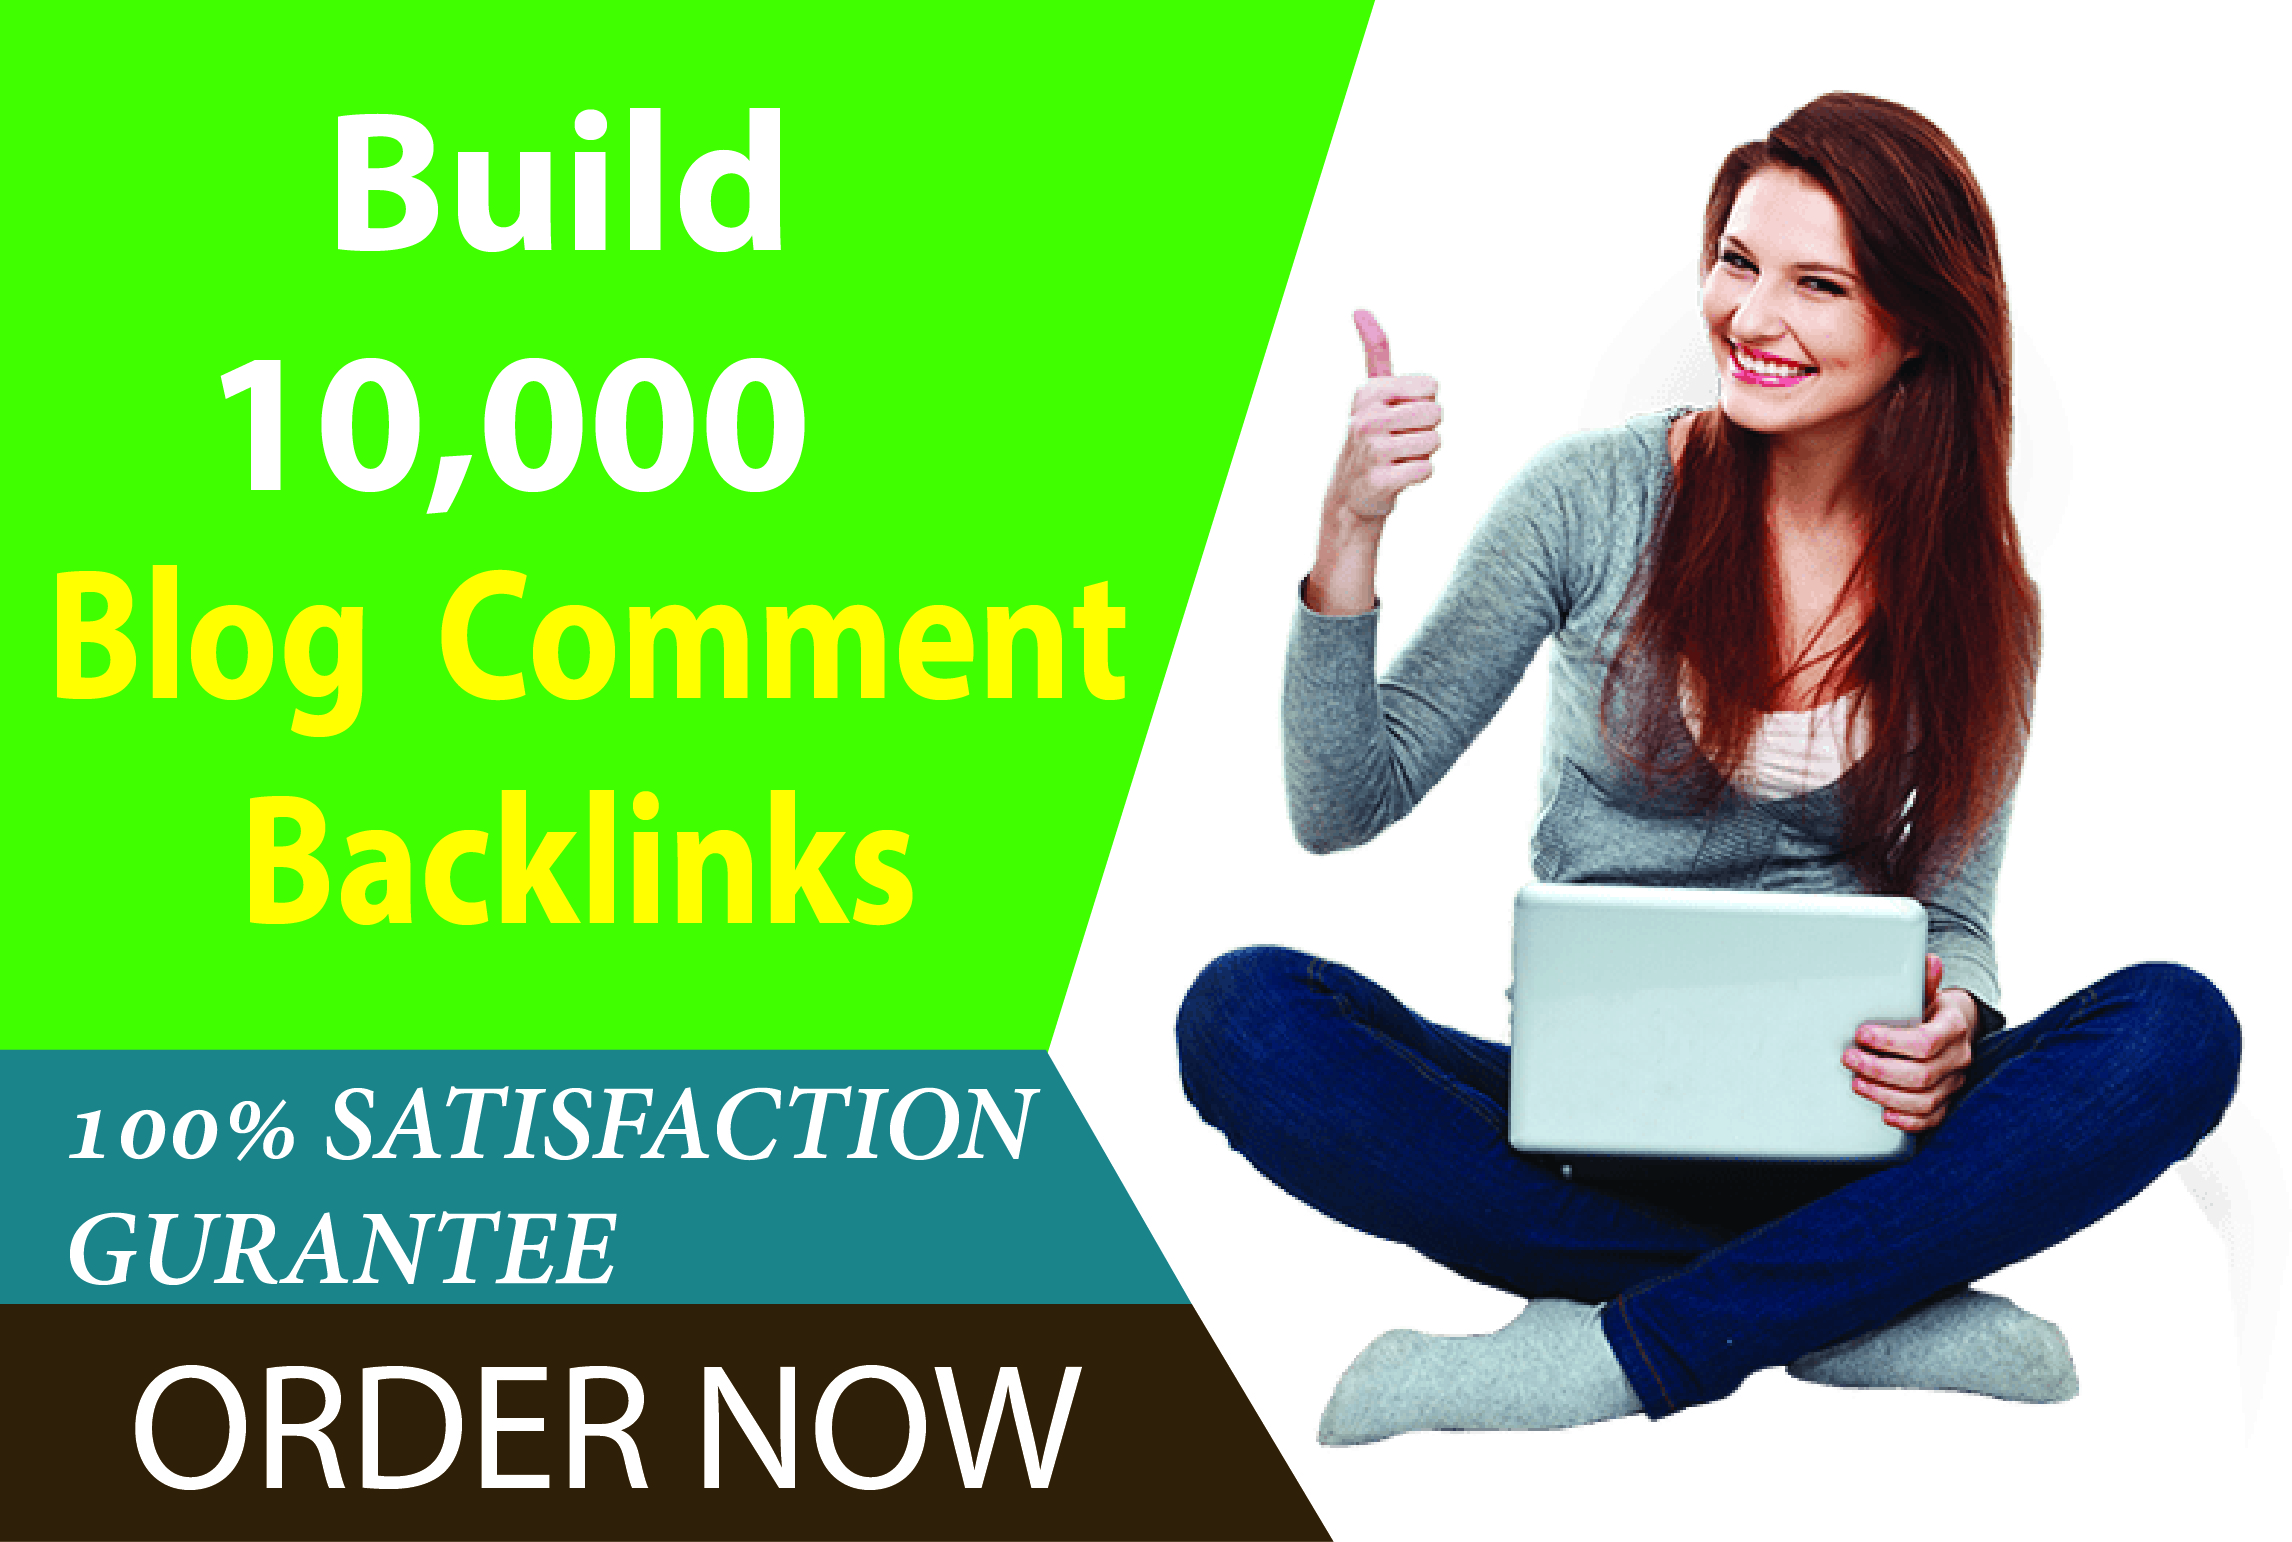 I will create 10,000 blog comments SEO backlinks for google ranking